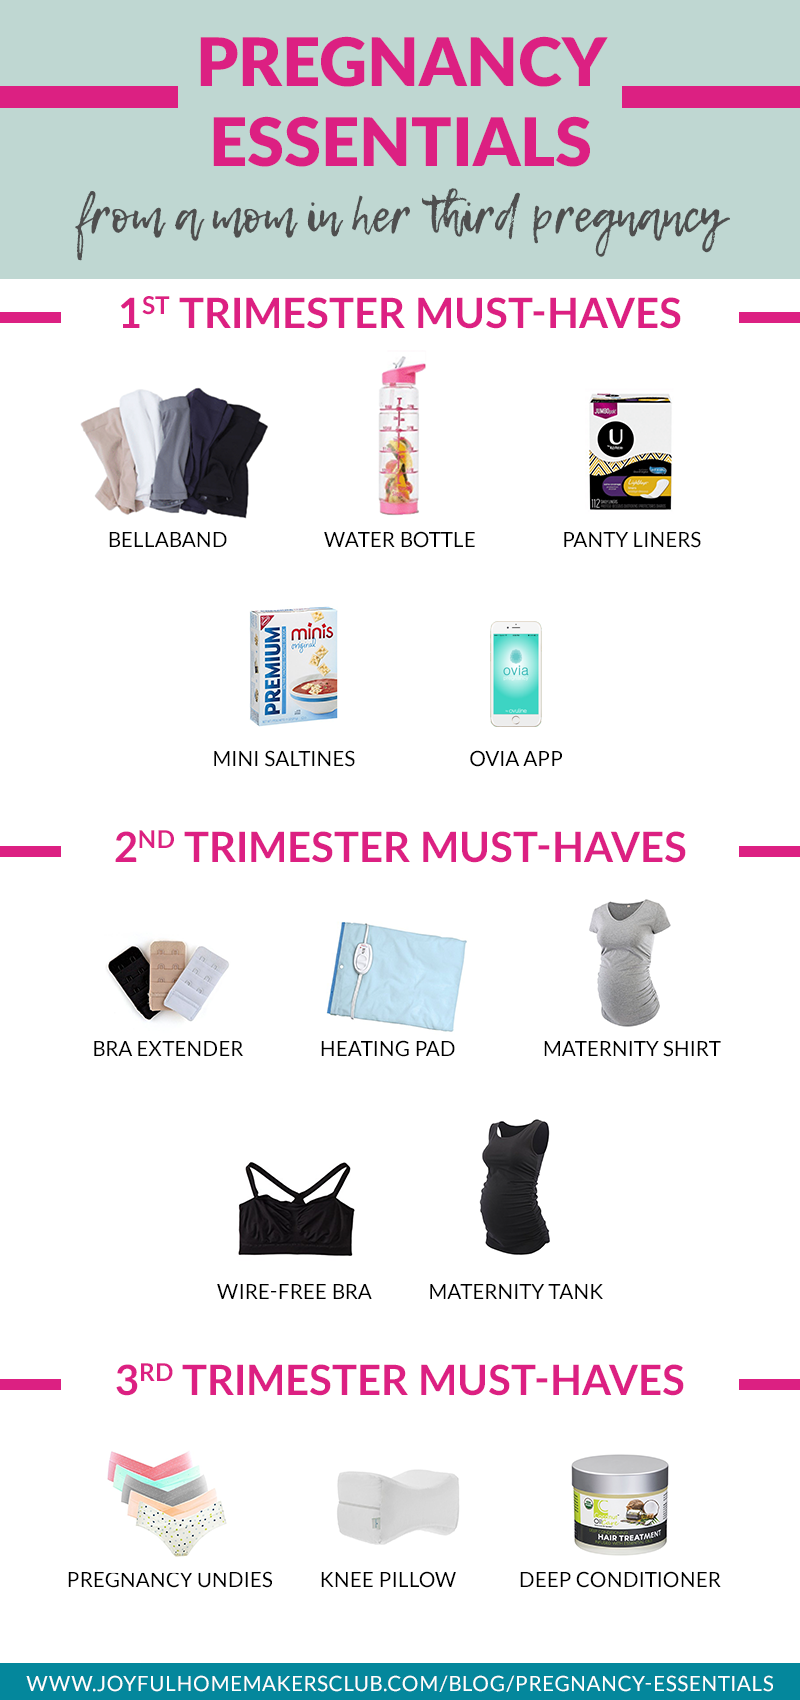 Everything you need for a comfortable and happy #pregnancy #pregnancyessentials #musthaves #checklist